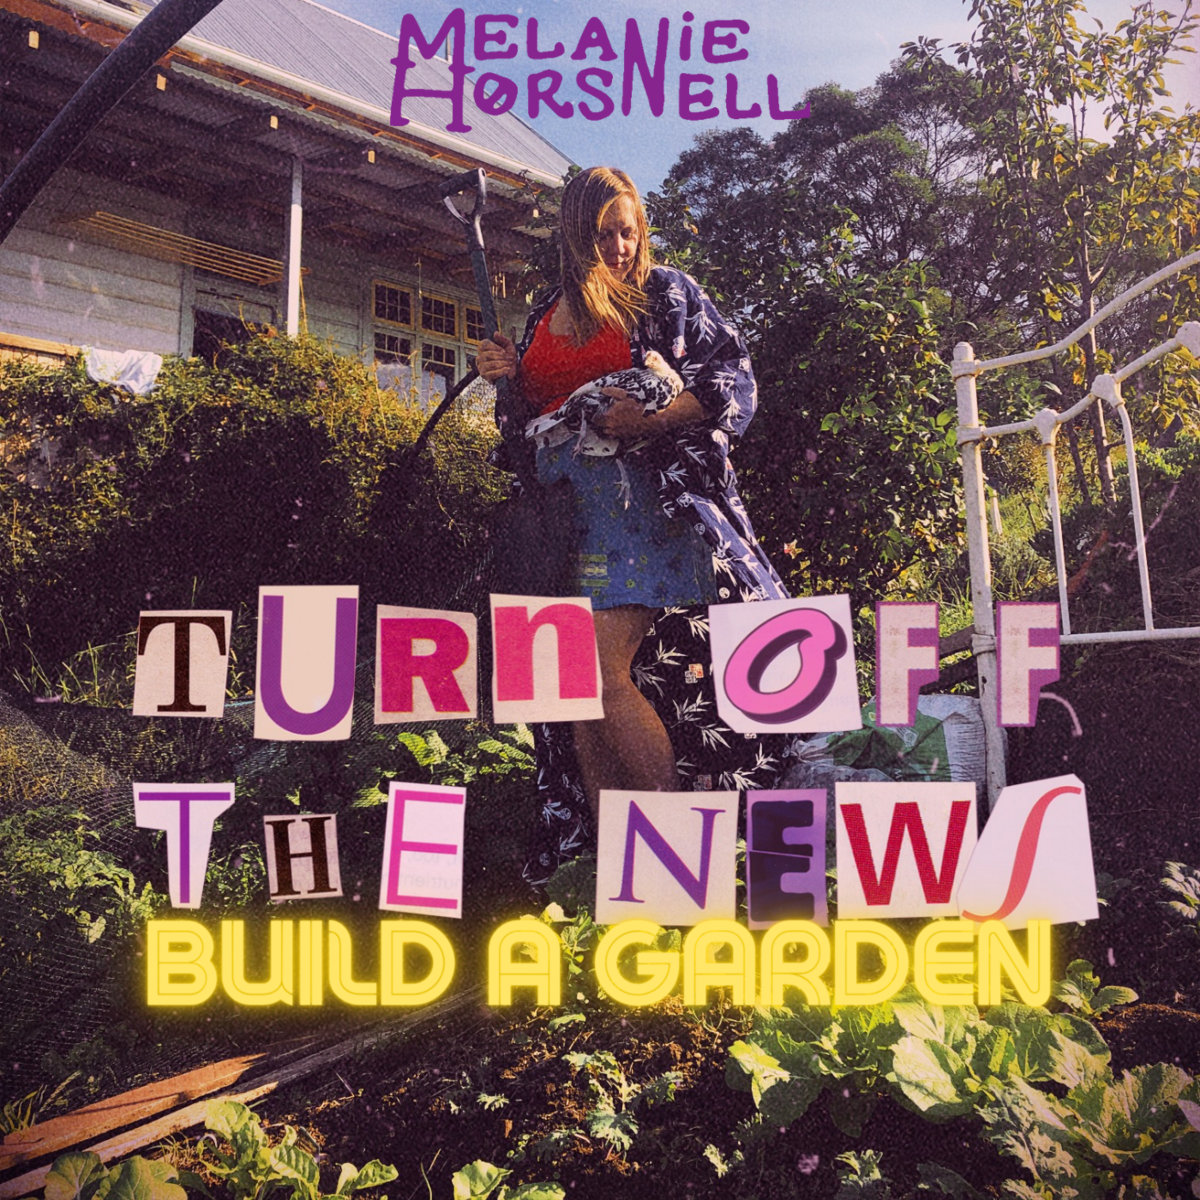 Turn Off The News (Build A Garden) by Melanie Horsnell